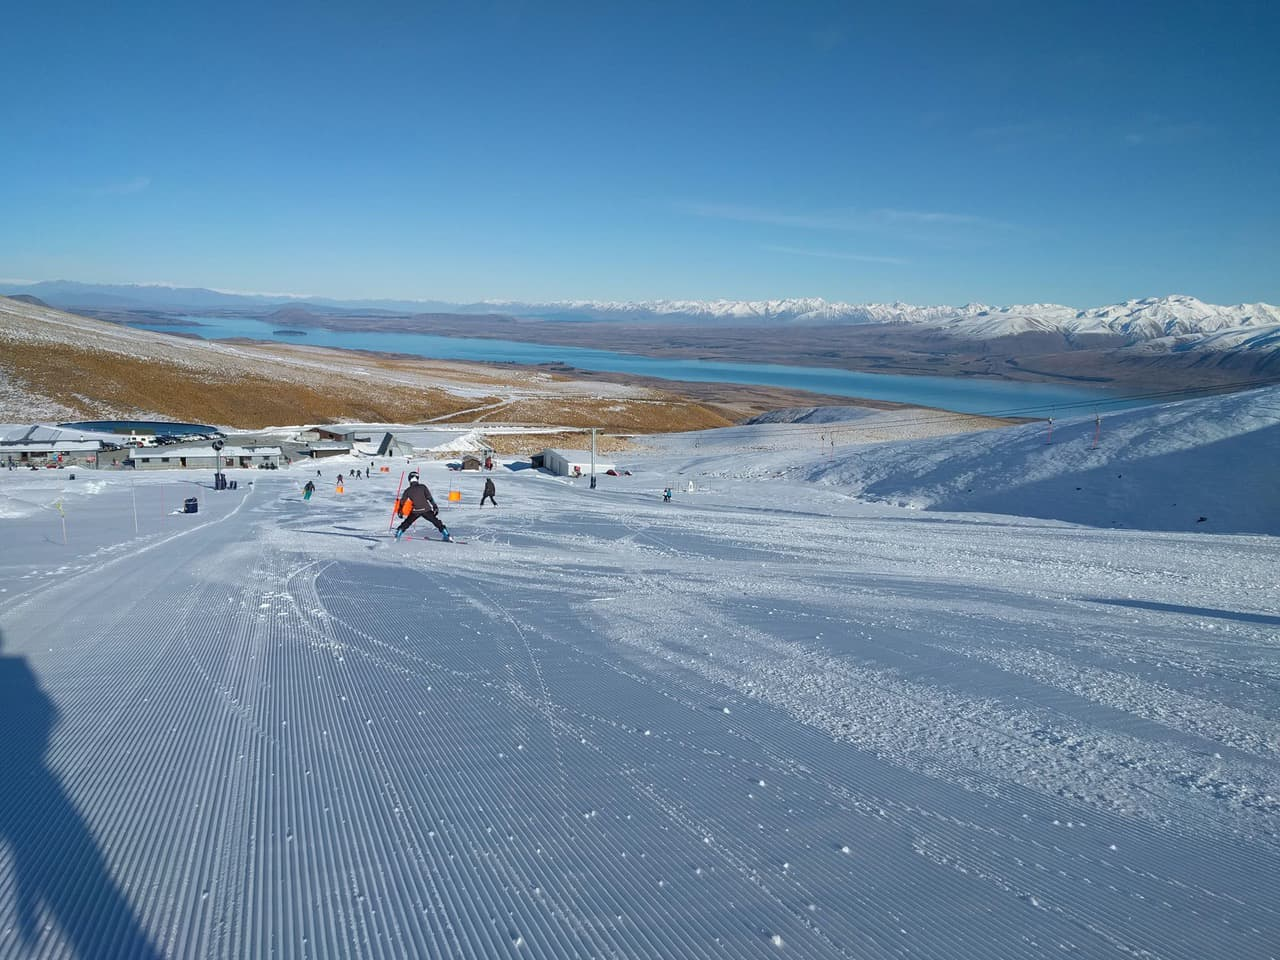 SapphireOne Alpine Ski Team hits the slopes of New Zealand in this week